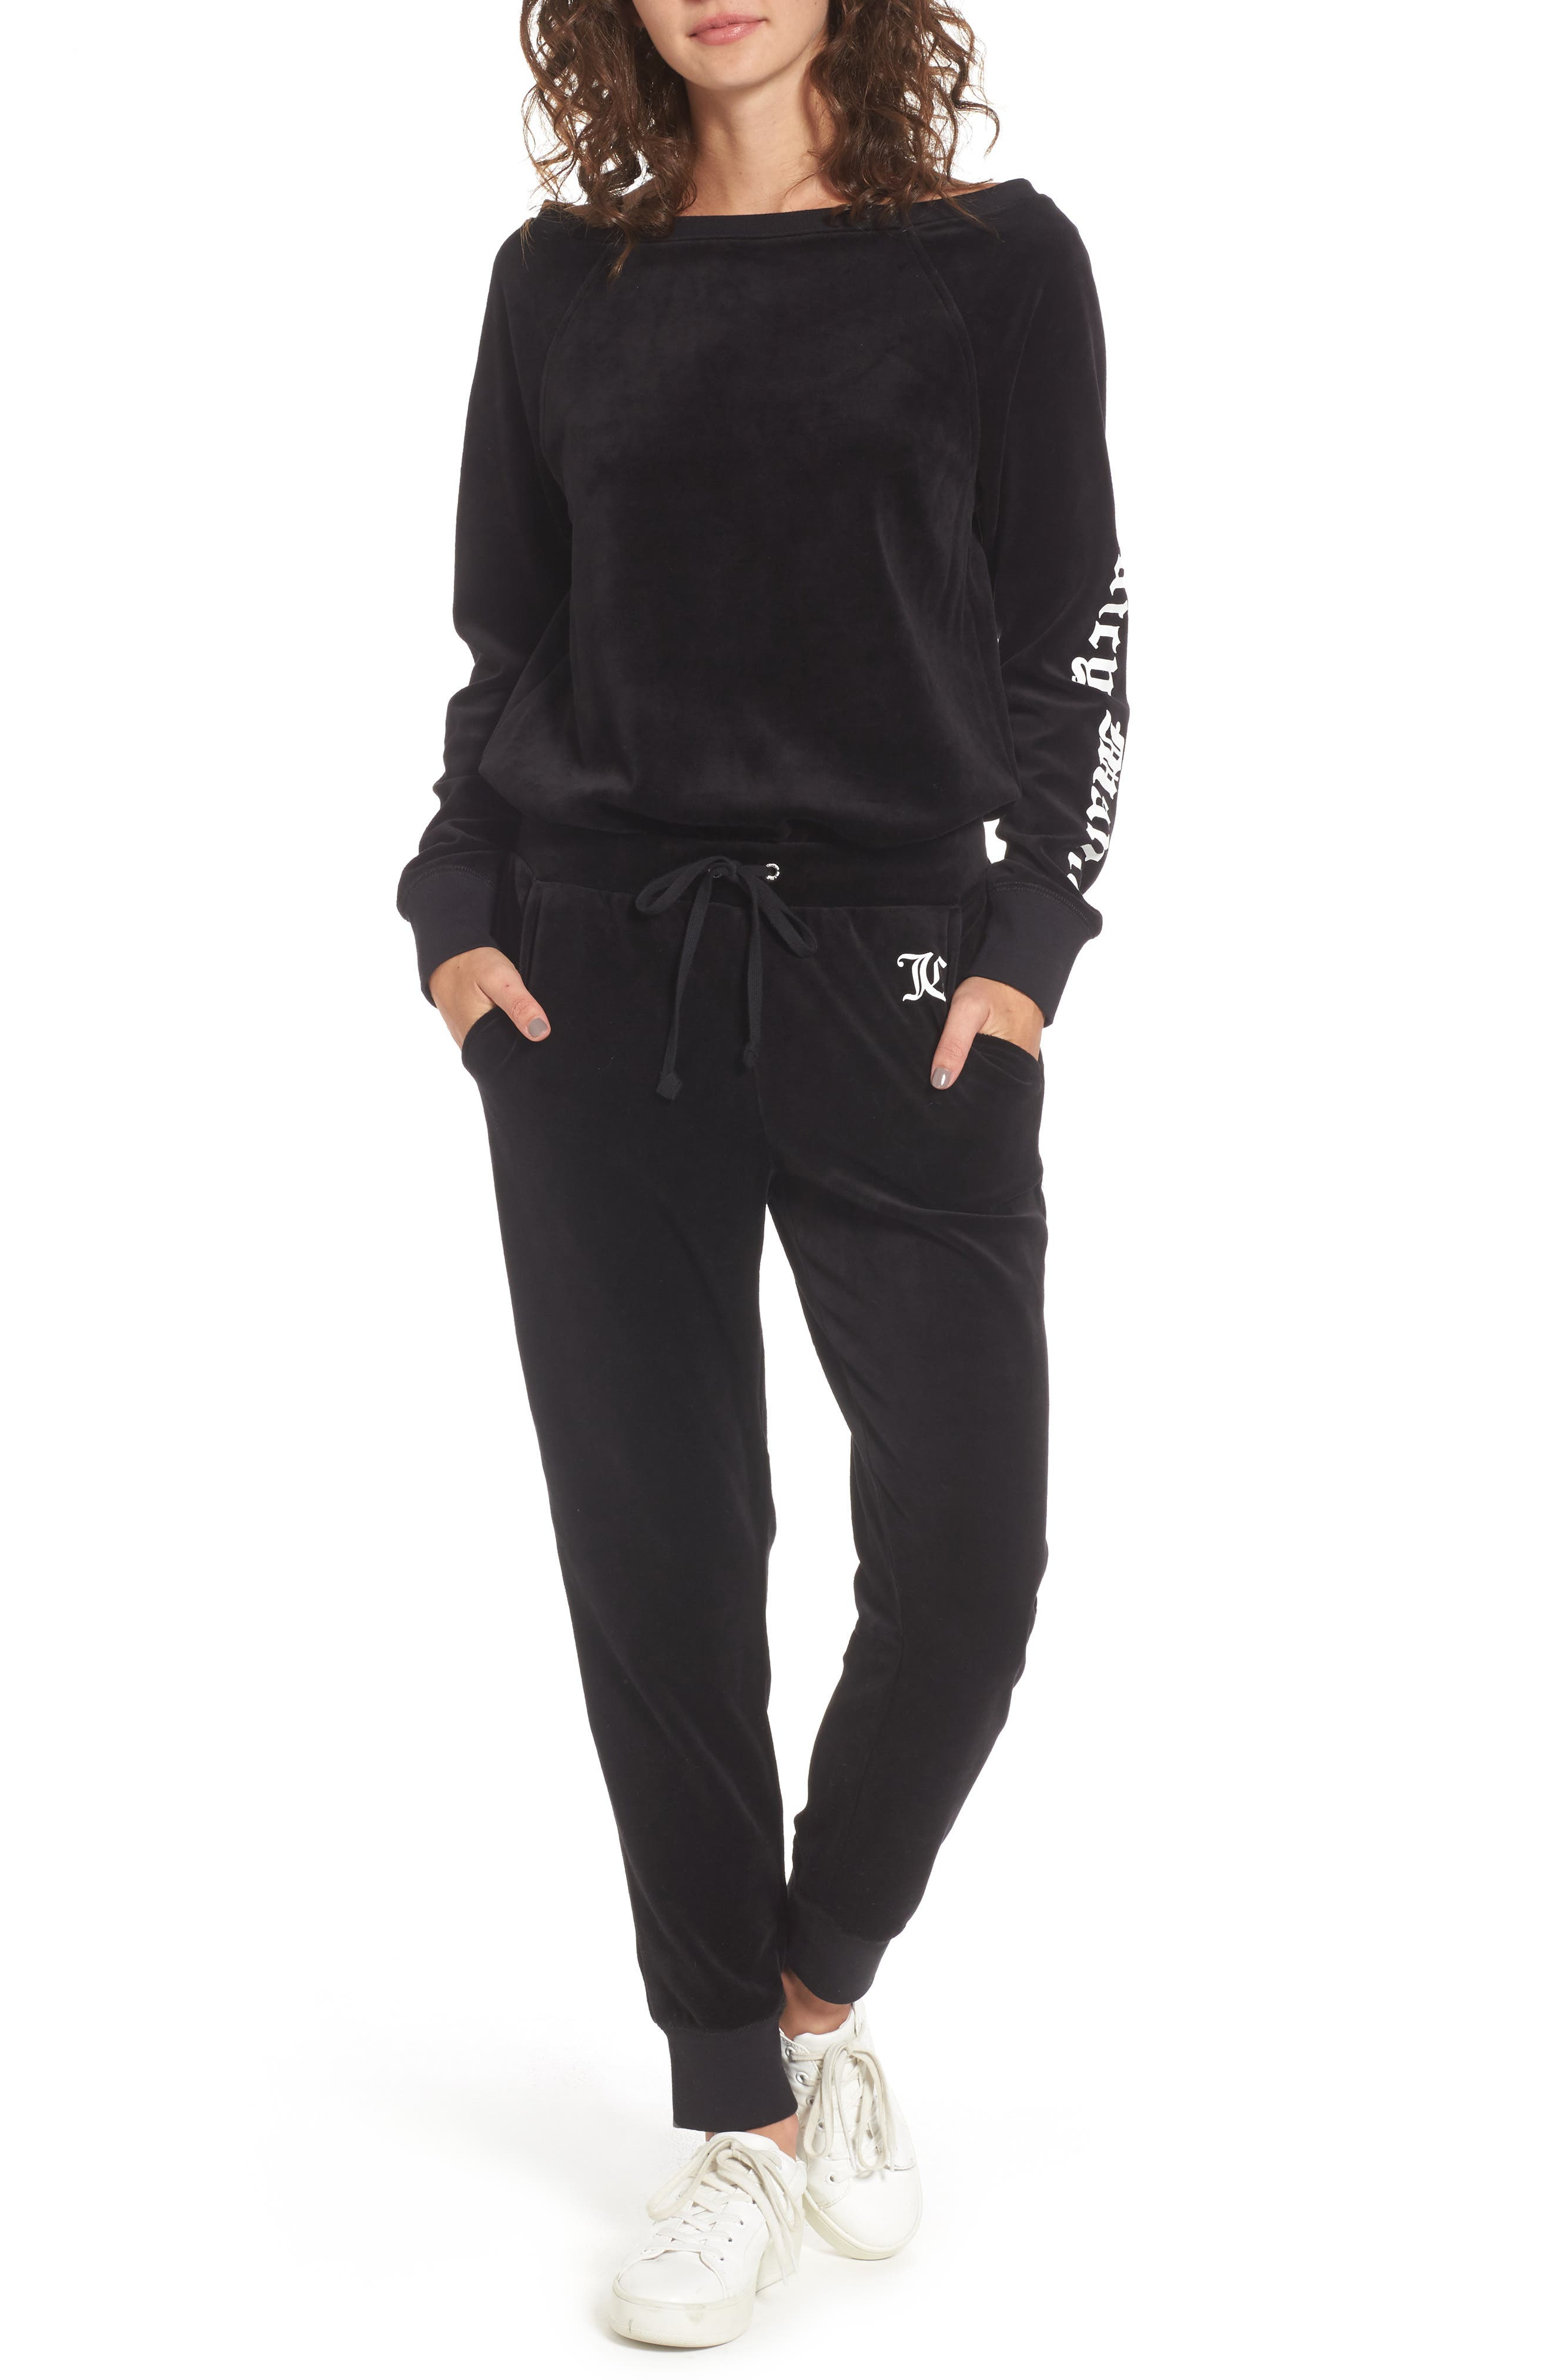 Juicy Couture Juicy Mania Velour Track Jumpsuit